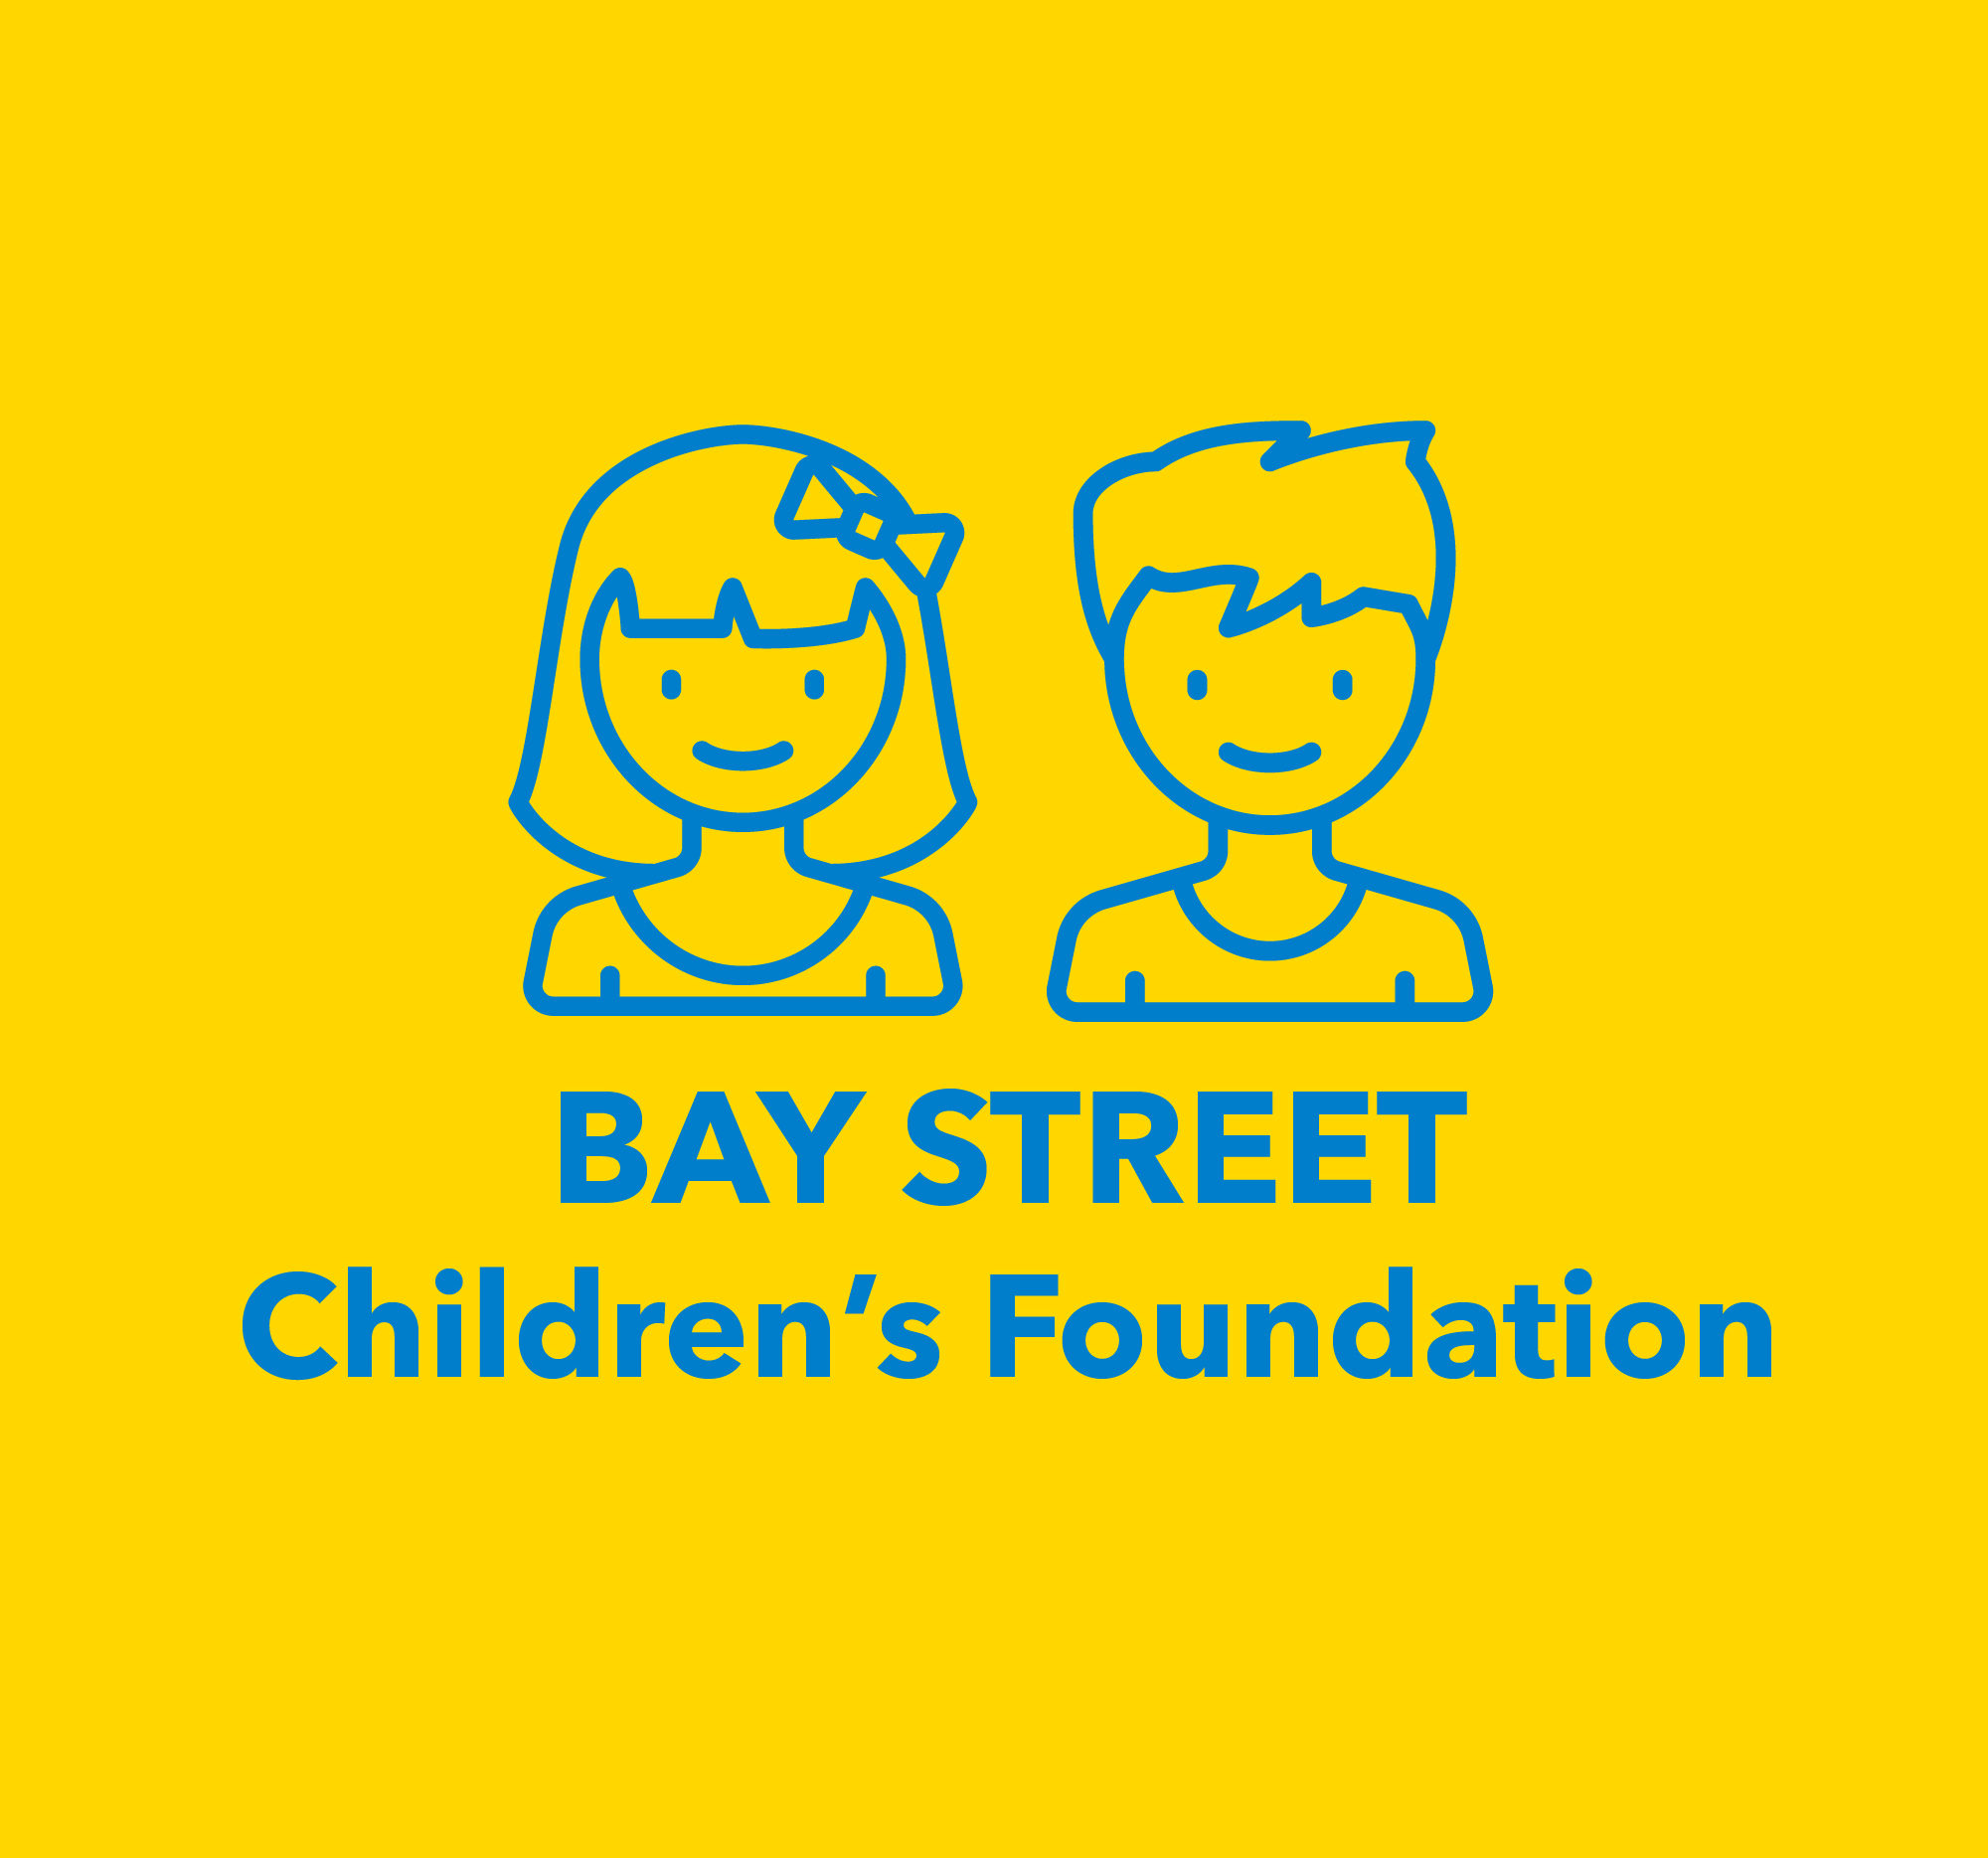 BAY STREET CHILDREN'S FOUNDATION